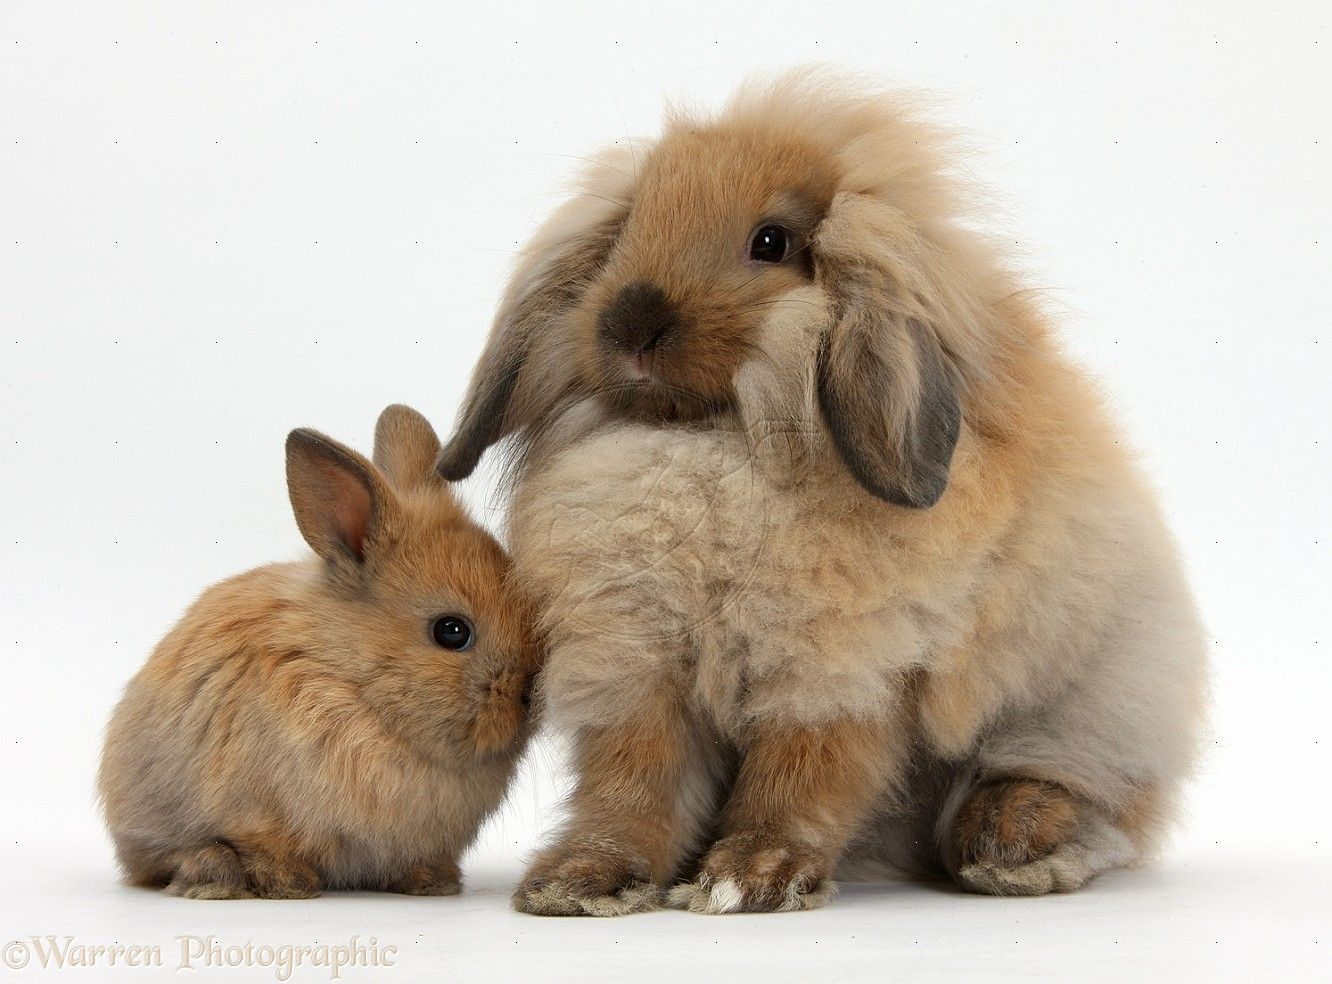 Cute Baby Bunnies | Fluffy Lionhead Lop Rabbit And Cute ... - photo#13